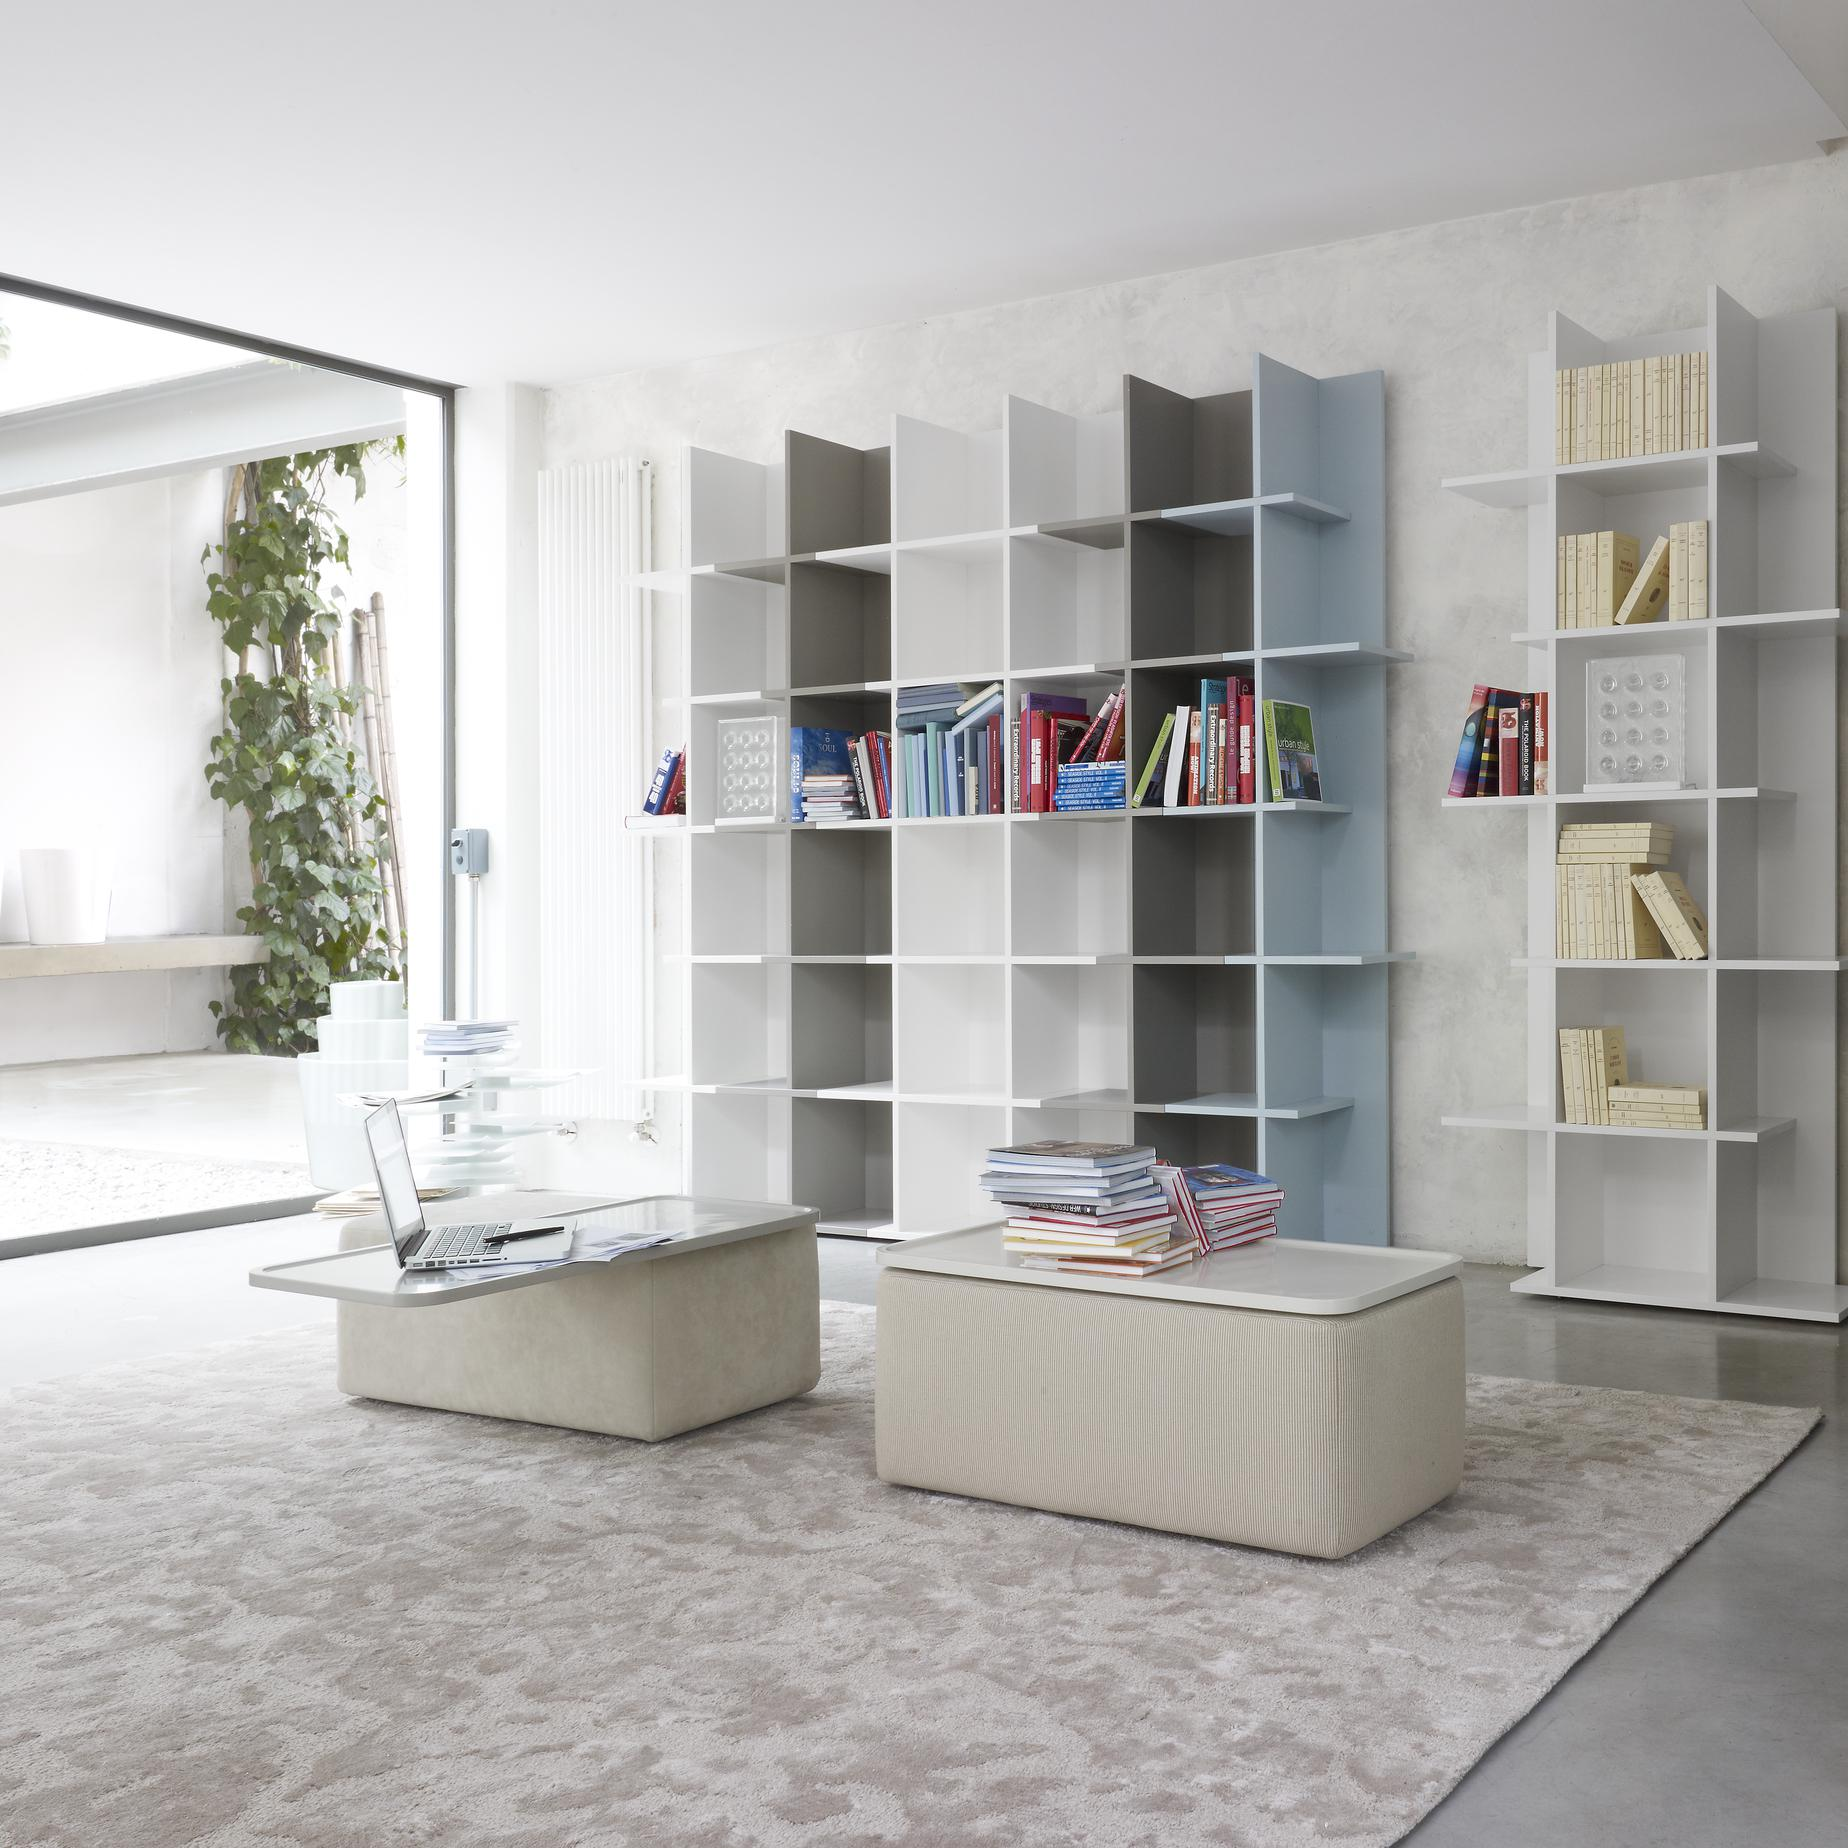 Modern Home Library Design Ideas: Shelving From Designer : Kazuko Okamoto